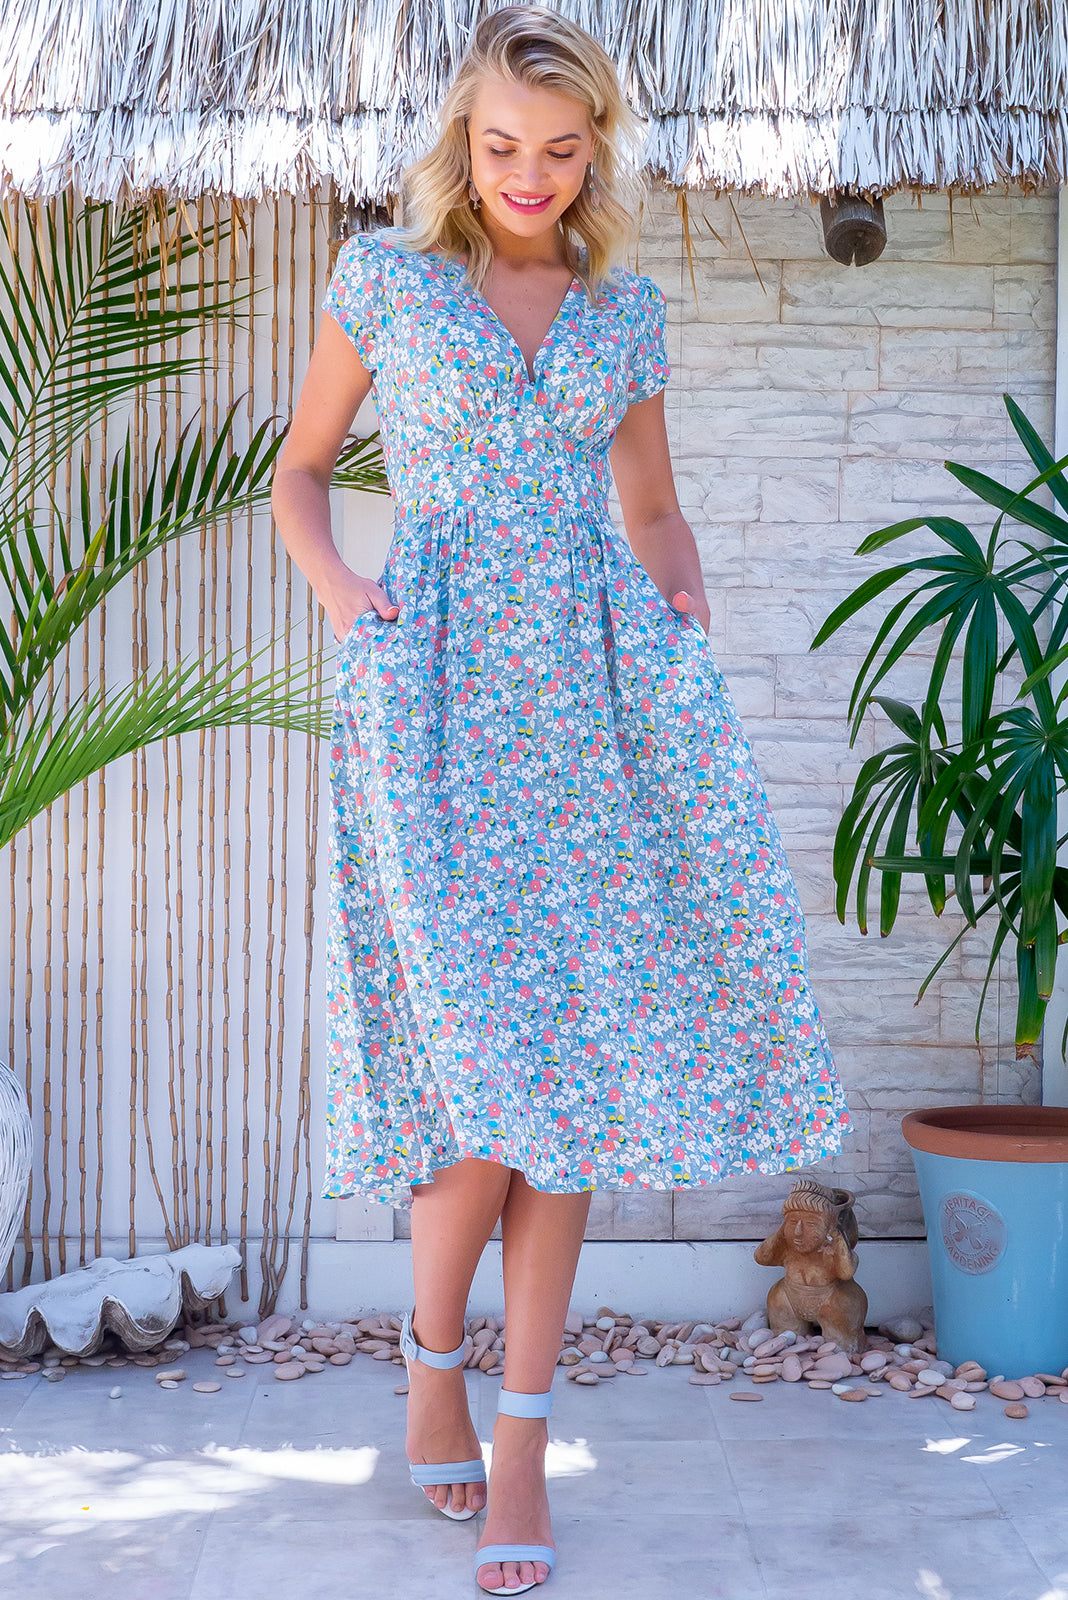 The Lizzie Steel Blue Dress features fitted basque waist with gathered bust, deep side pockets and 100% rayon in steele blue base with spring inspired floral print.